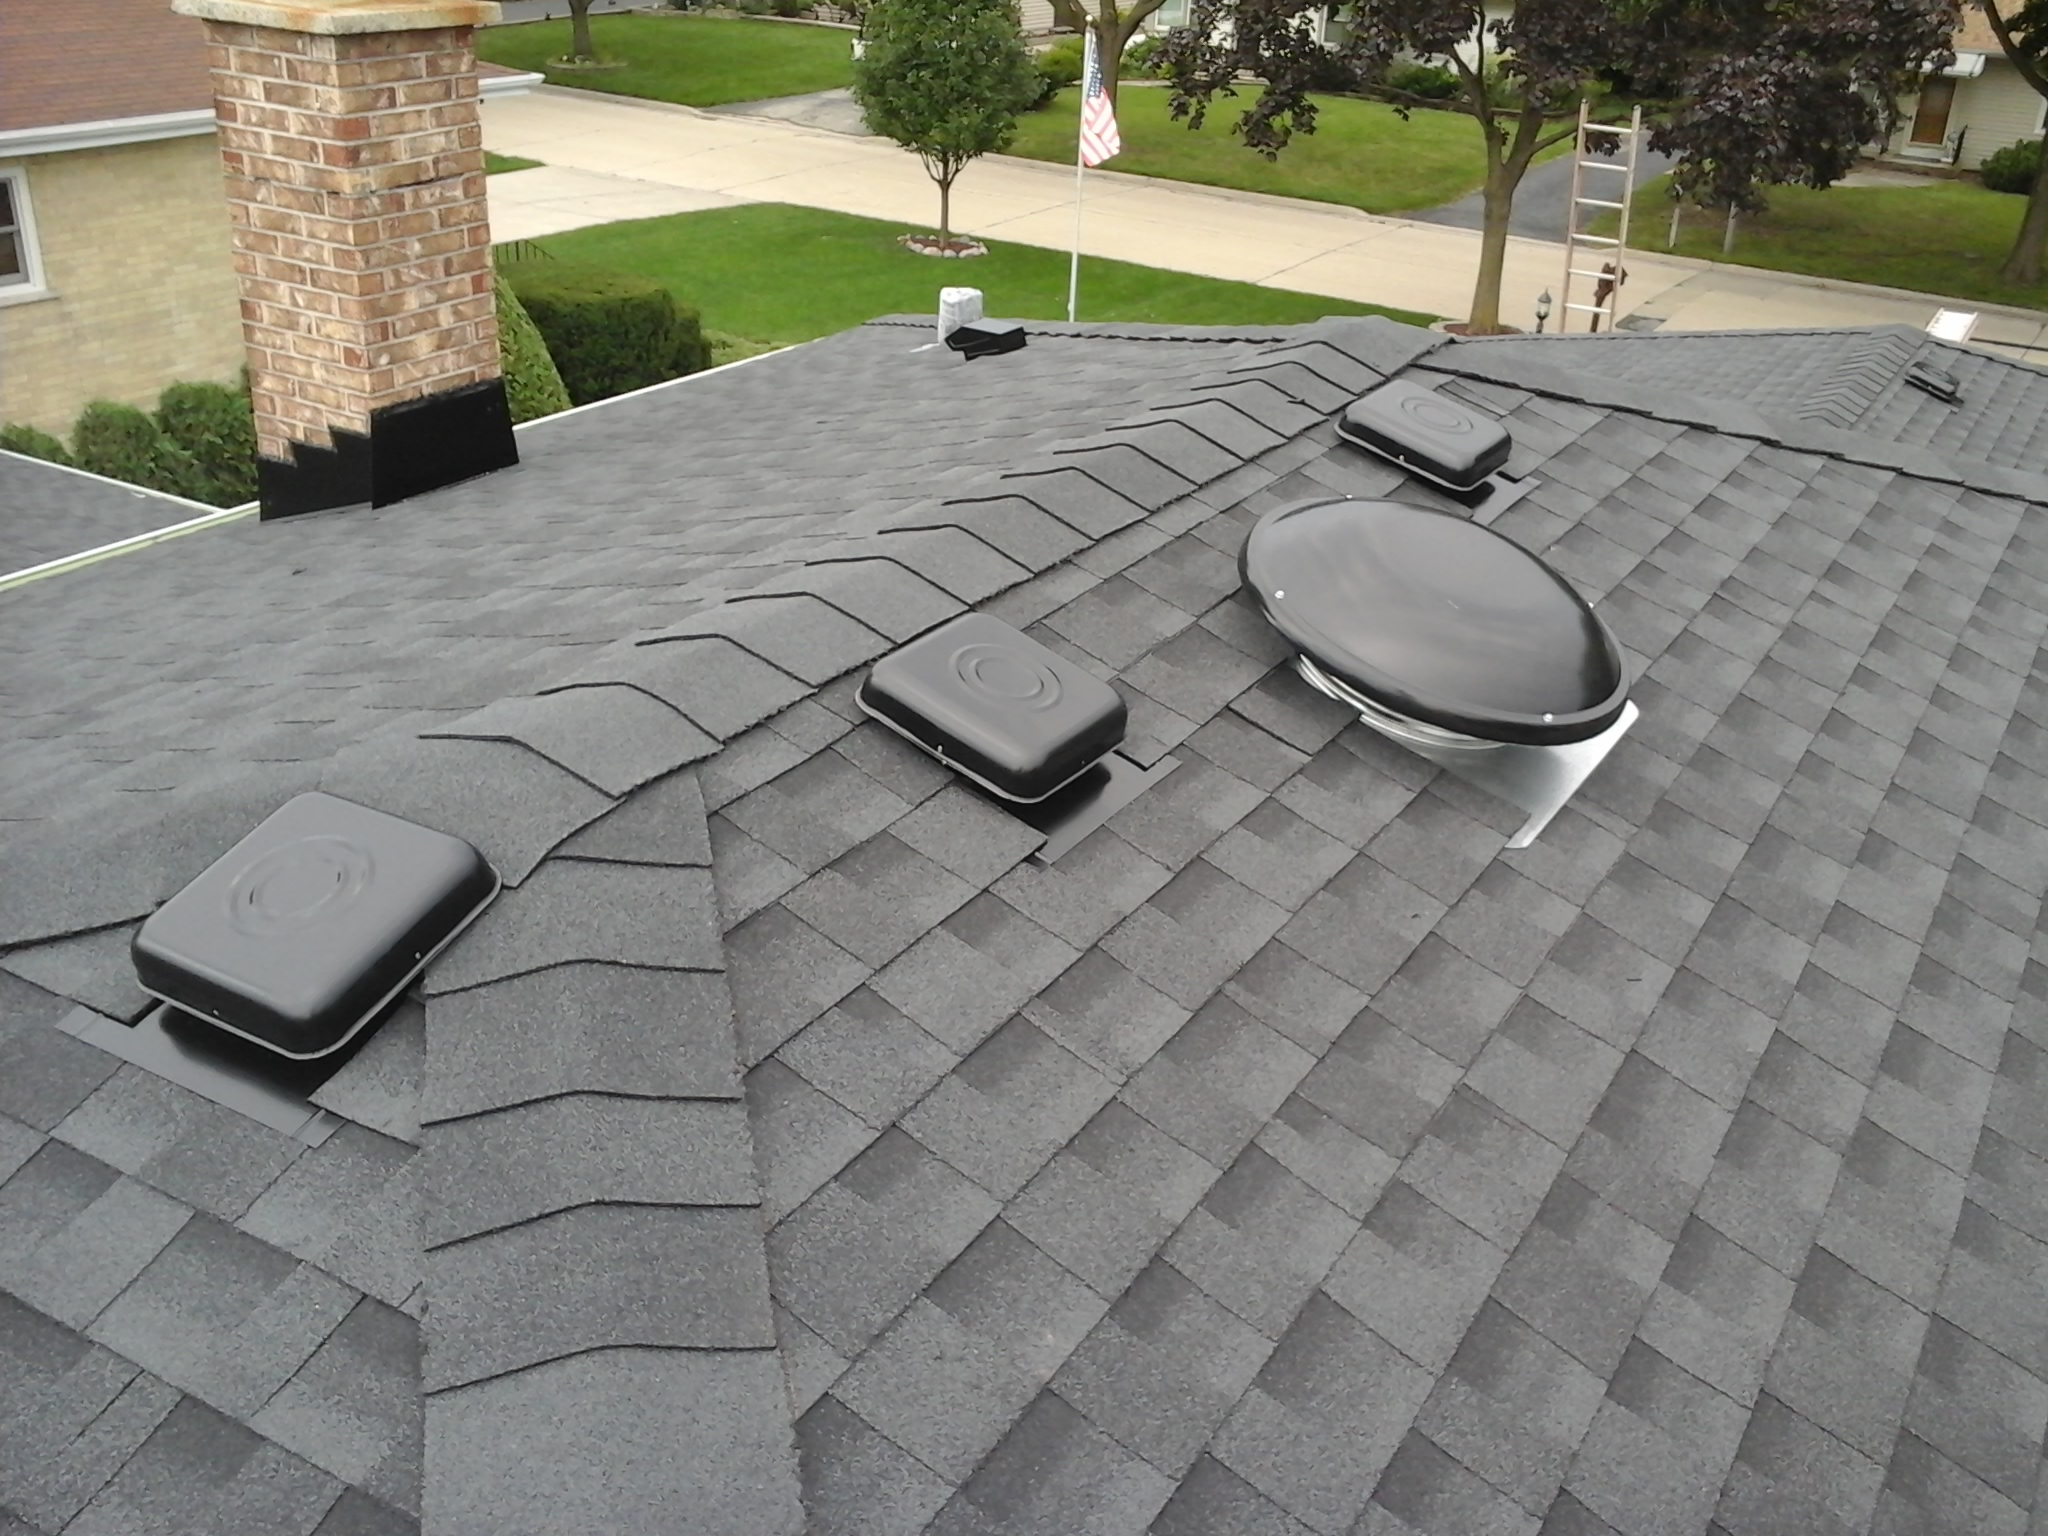 Don't Let Storms Blow You Away: Call Feze Roofing Today! - Elmhurst, Illinois has experienced significant hail, wind and storm damage over the last year.